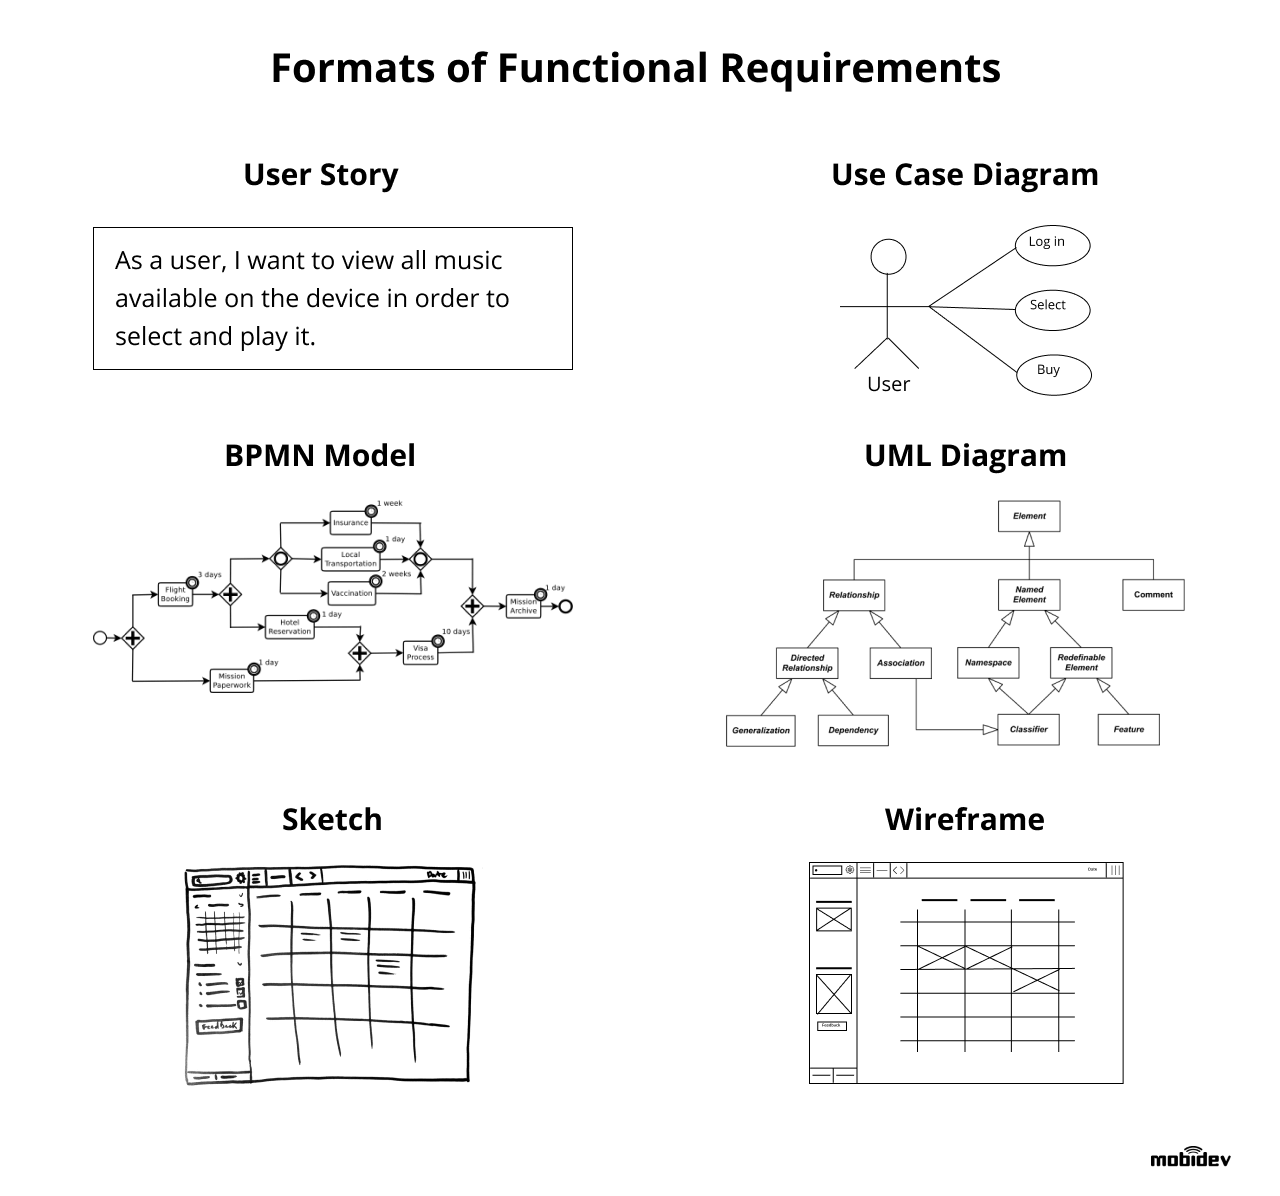 Functional requirements can come in different formats